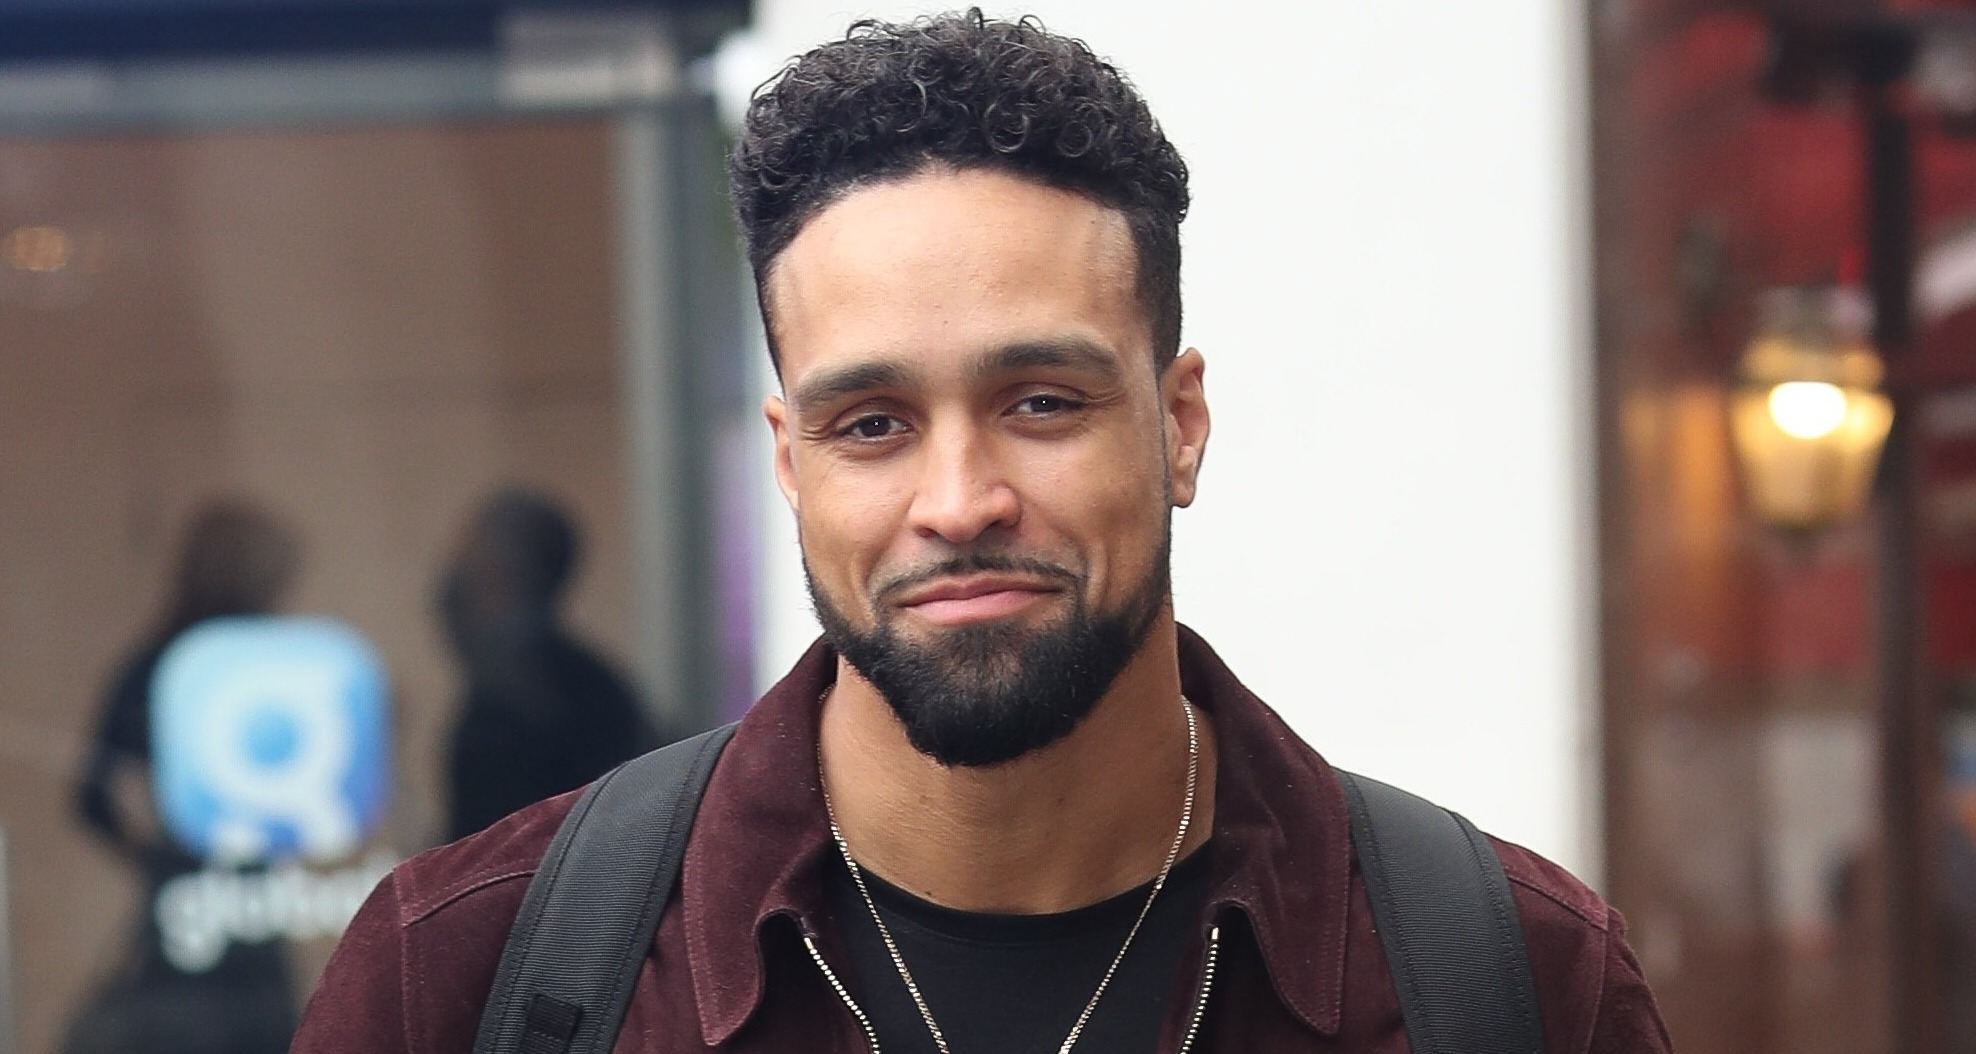 Ashley Banjo S Wfie Gives Birth To Second Baby Entertainment Daily